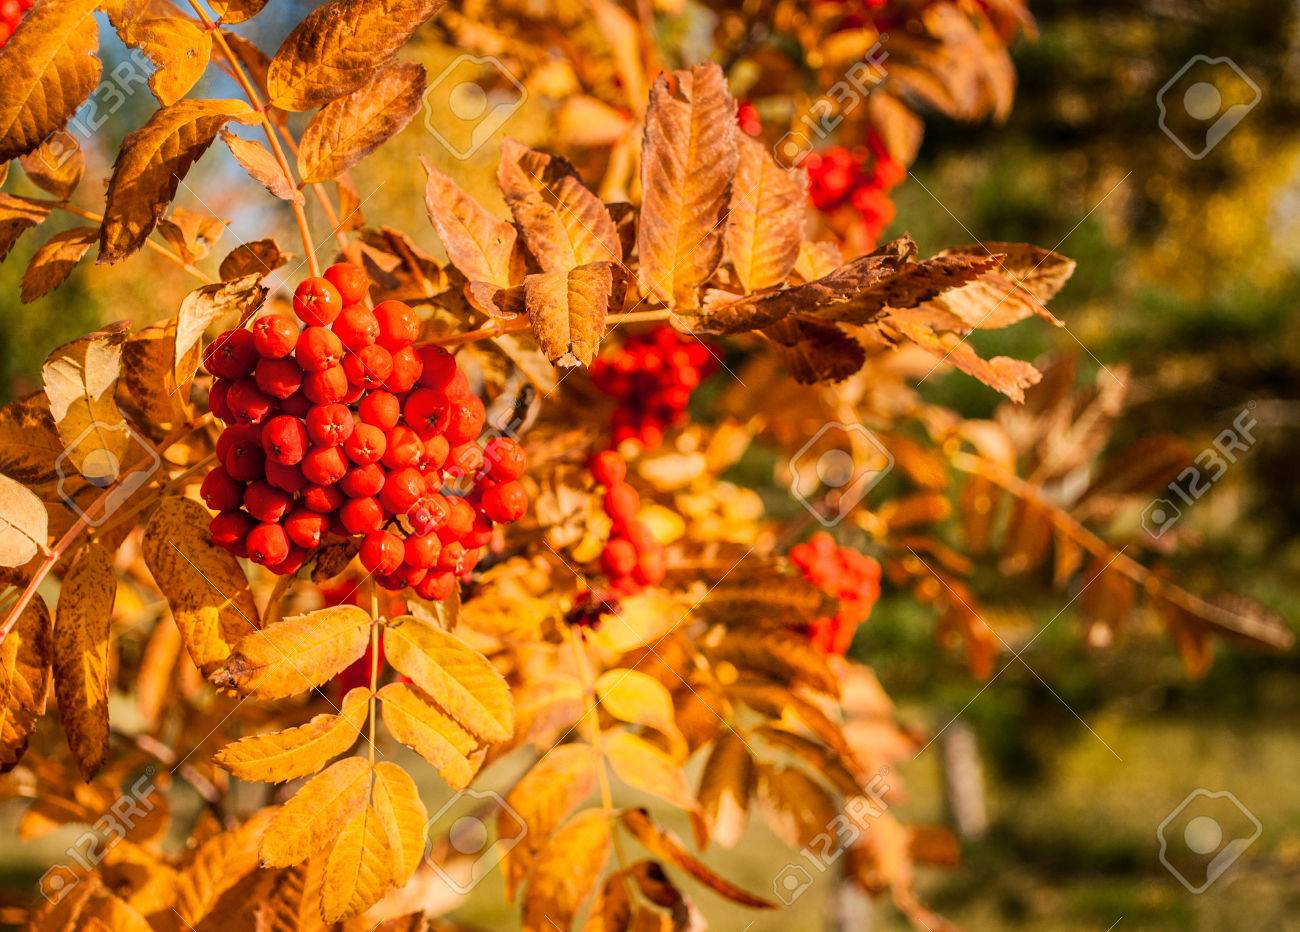 Autumn Tree With Red Berries Stock Photo Picture And Royalty Free